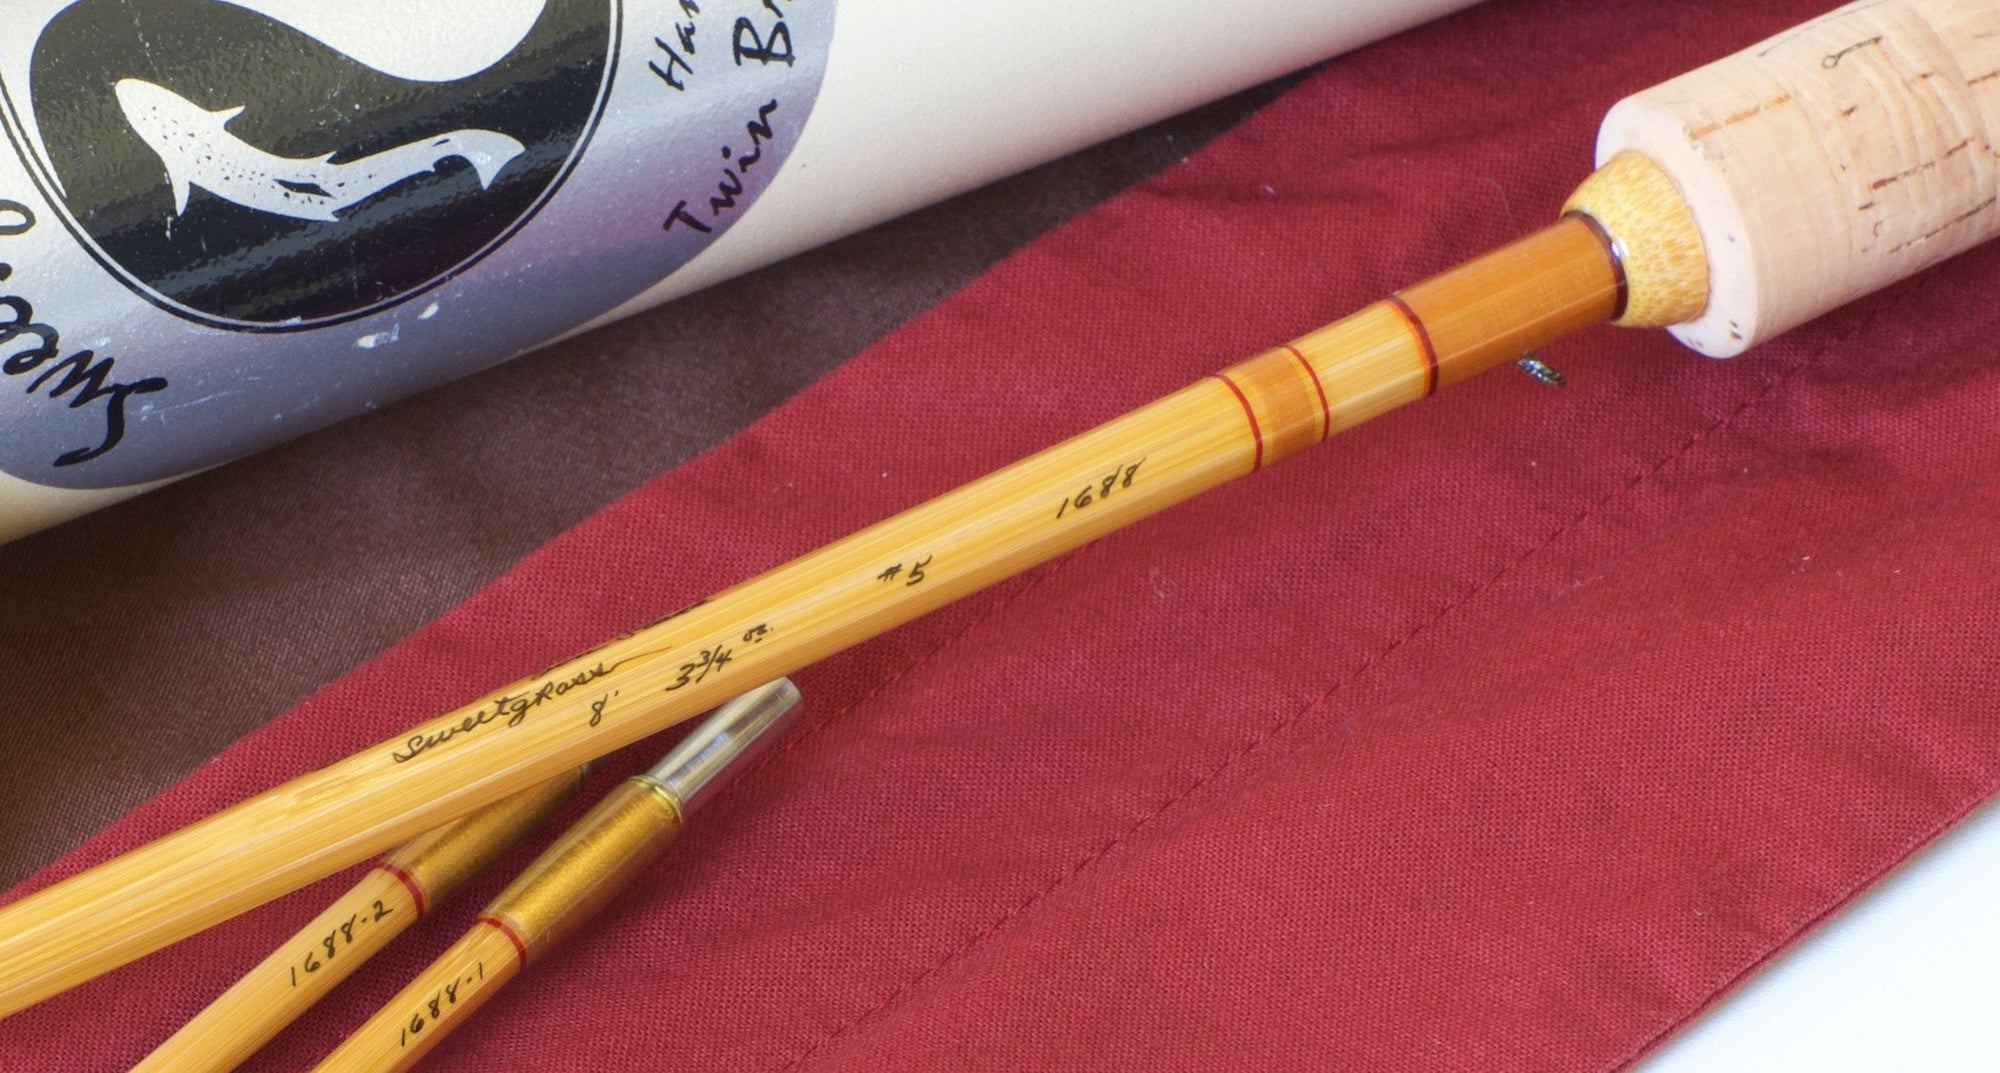 Sweetgrass Bamboo Rod 8' 5wt 2/2 (Octagonal Construction)